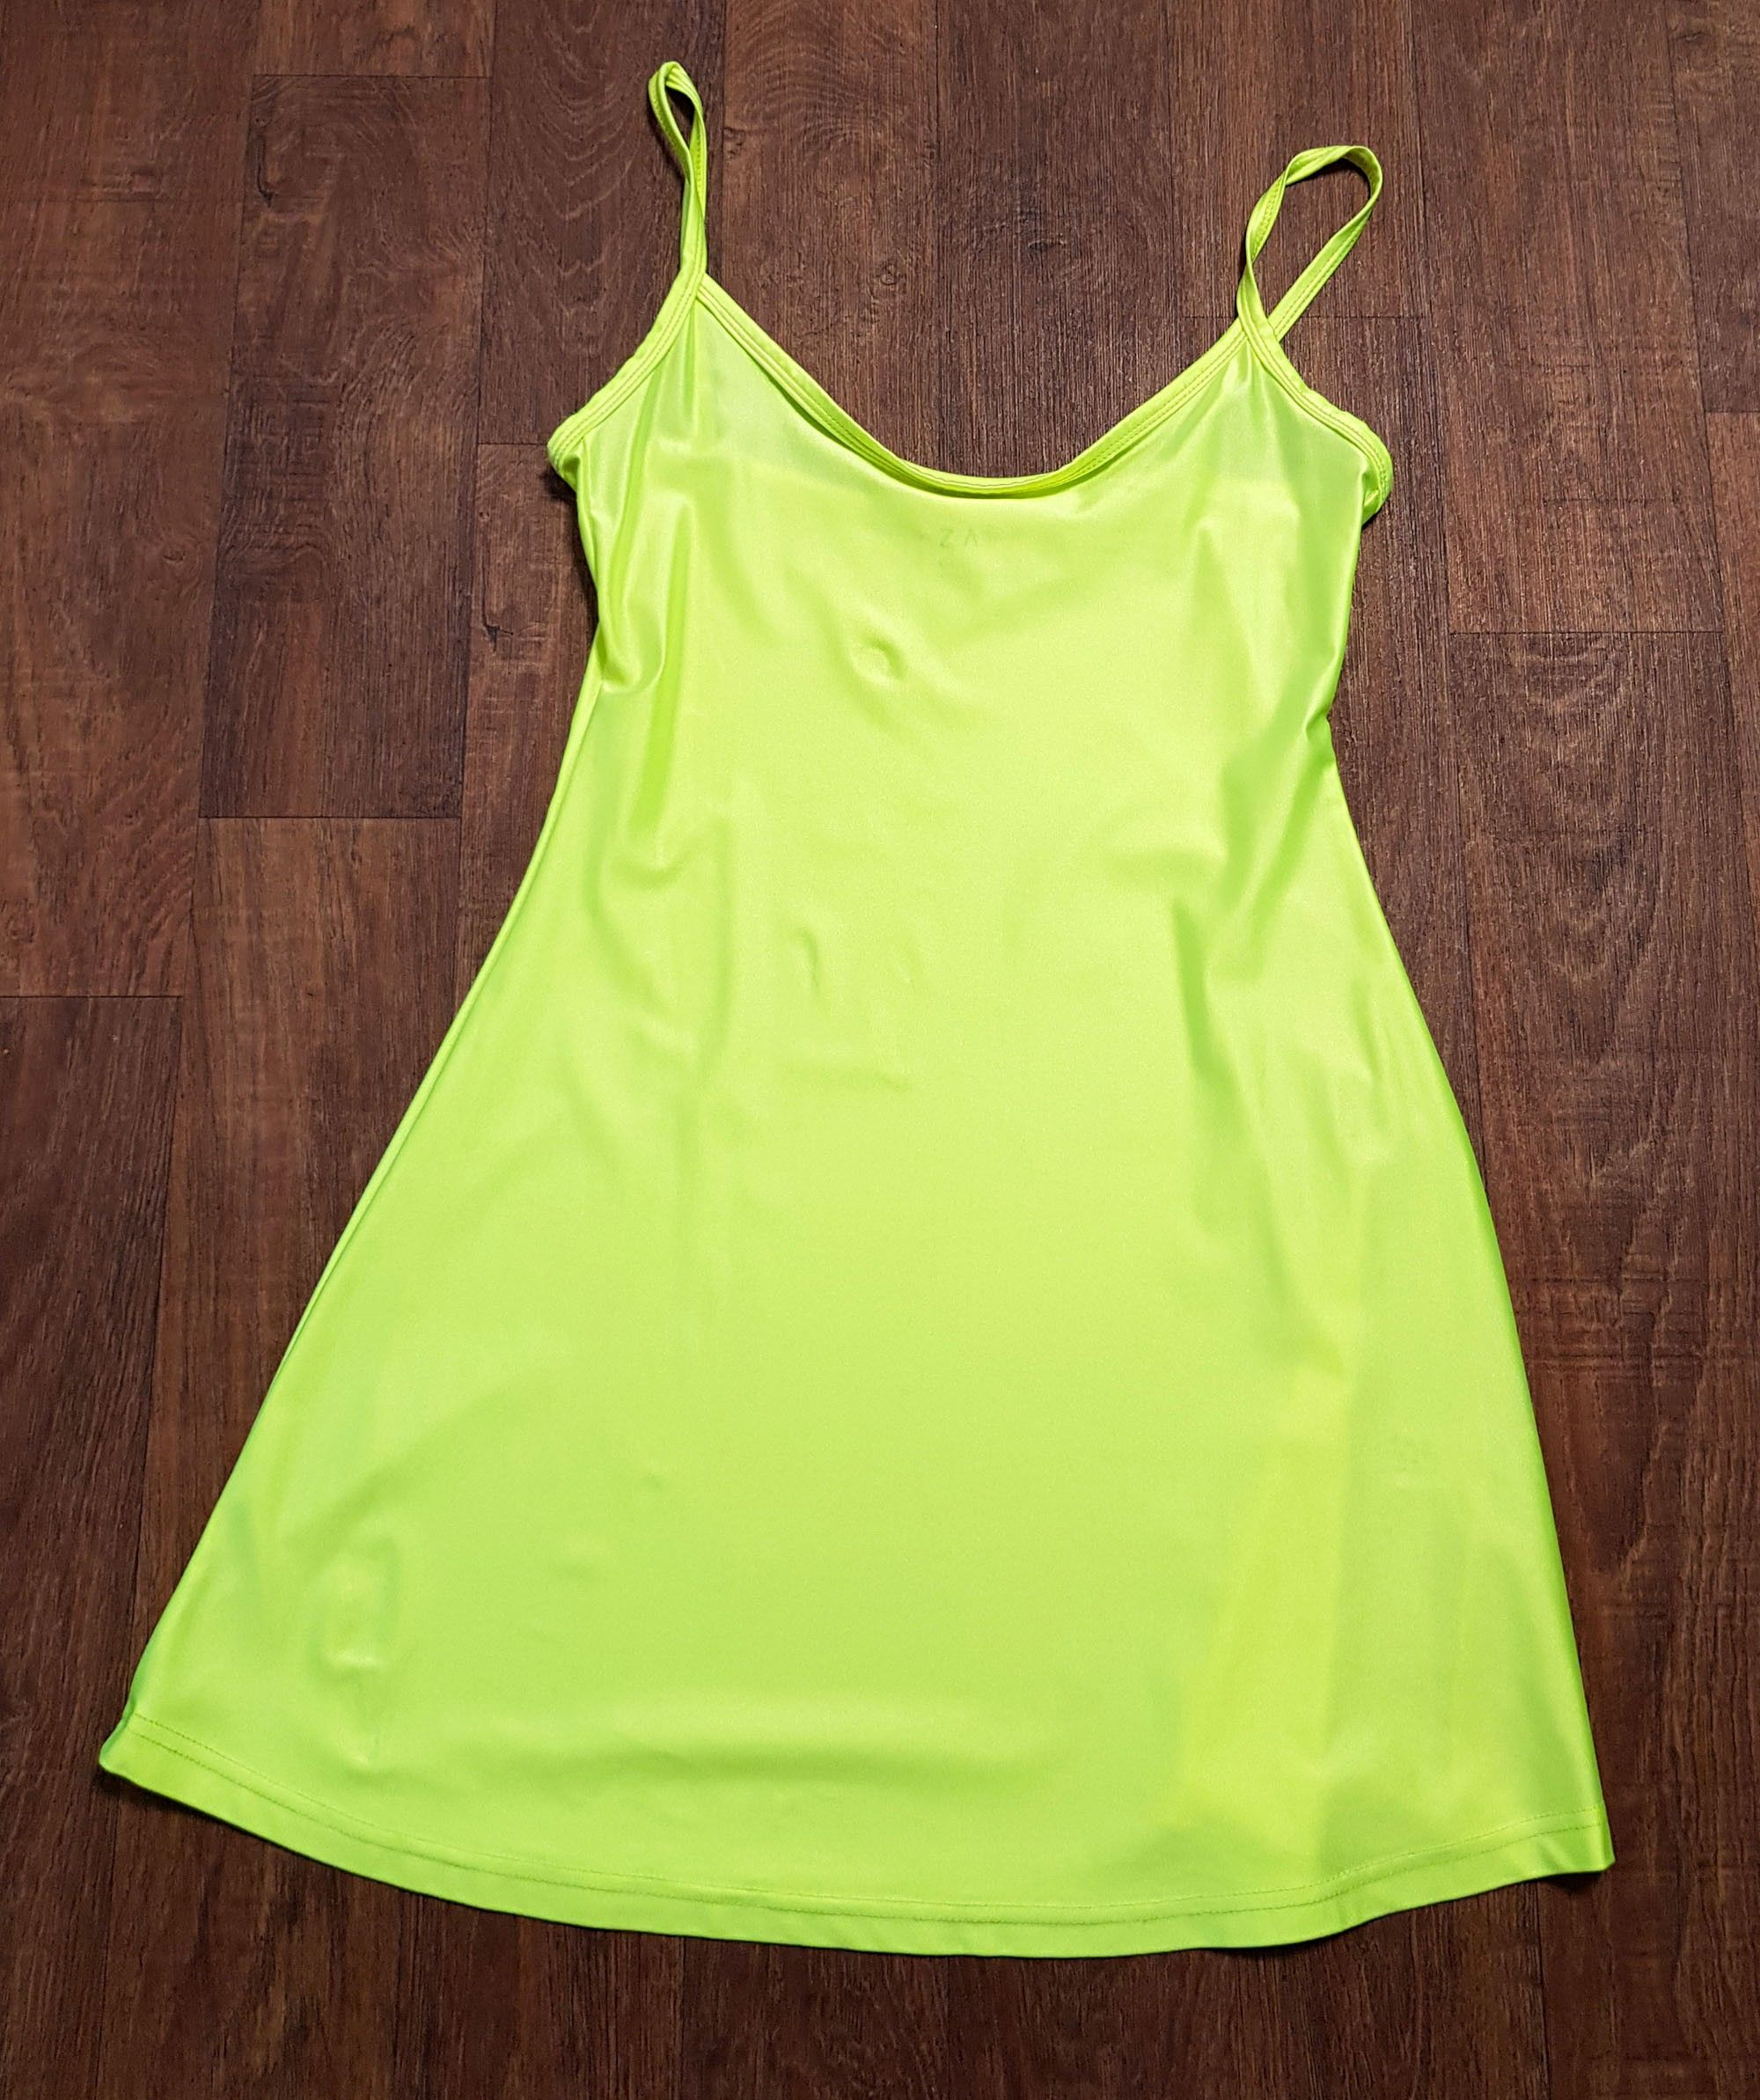 1990s Vintage Neon Green Slip Dress UK Size 8/10